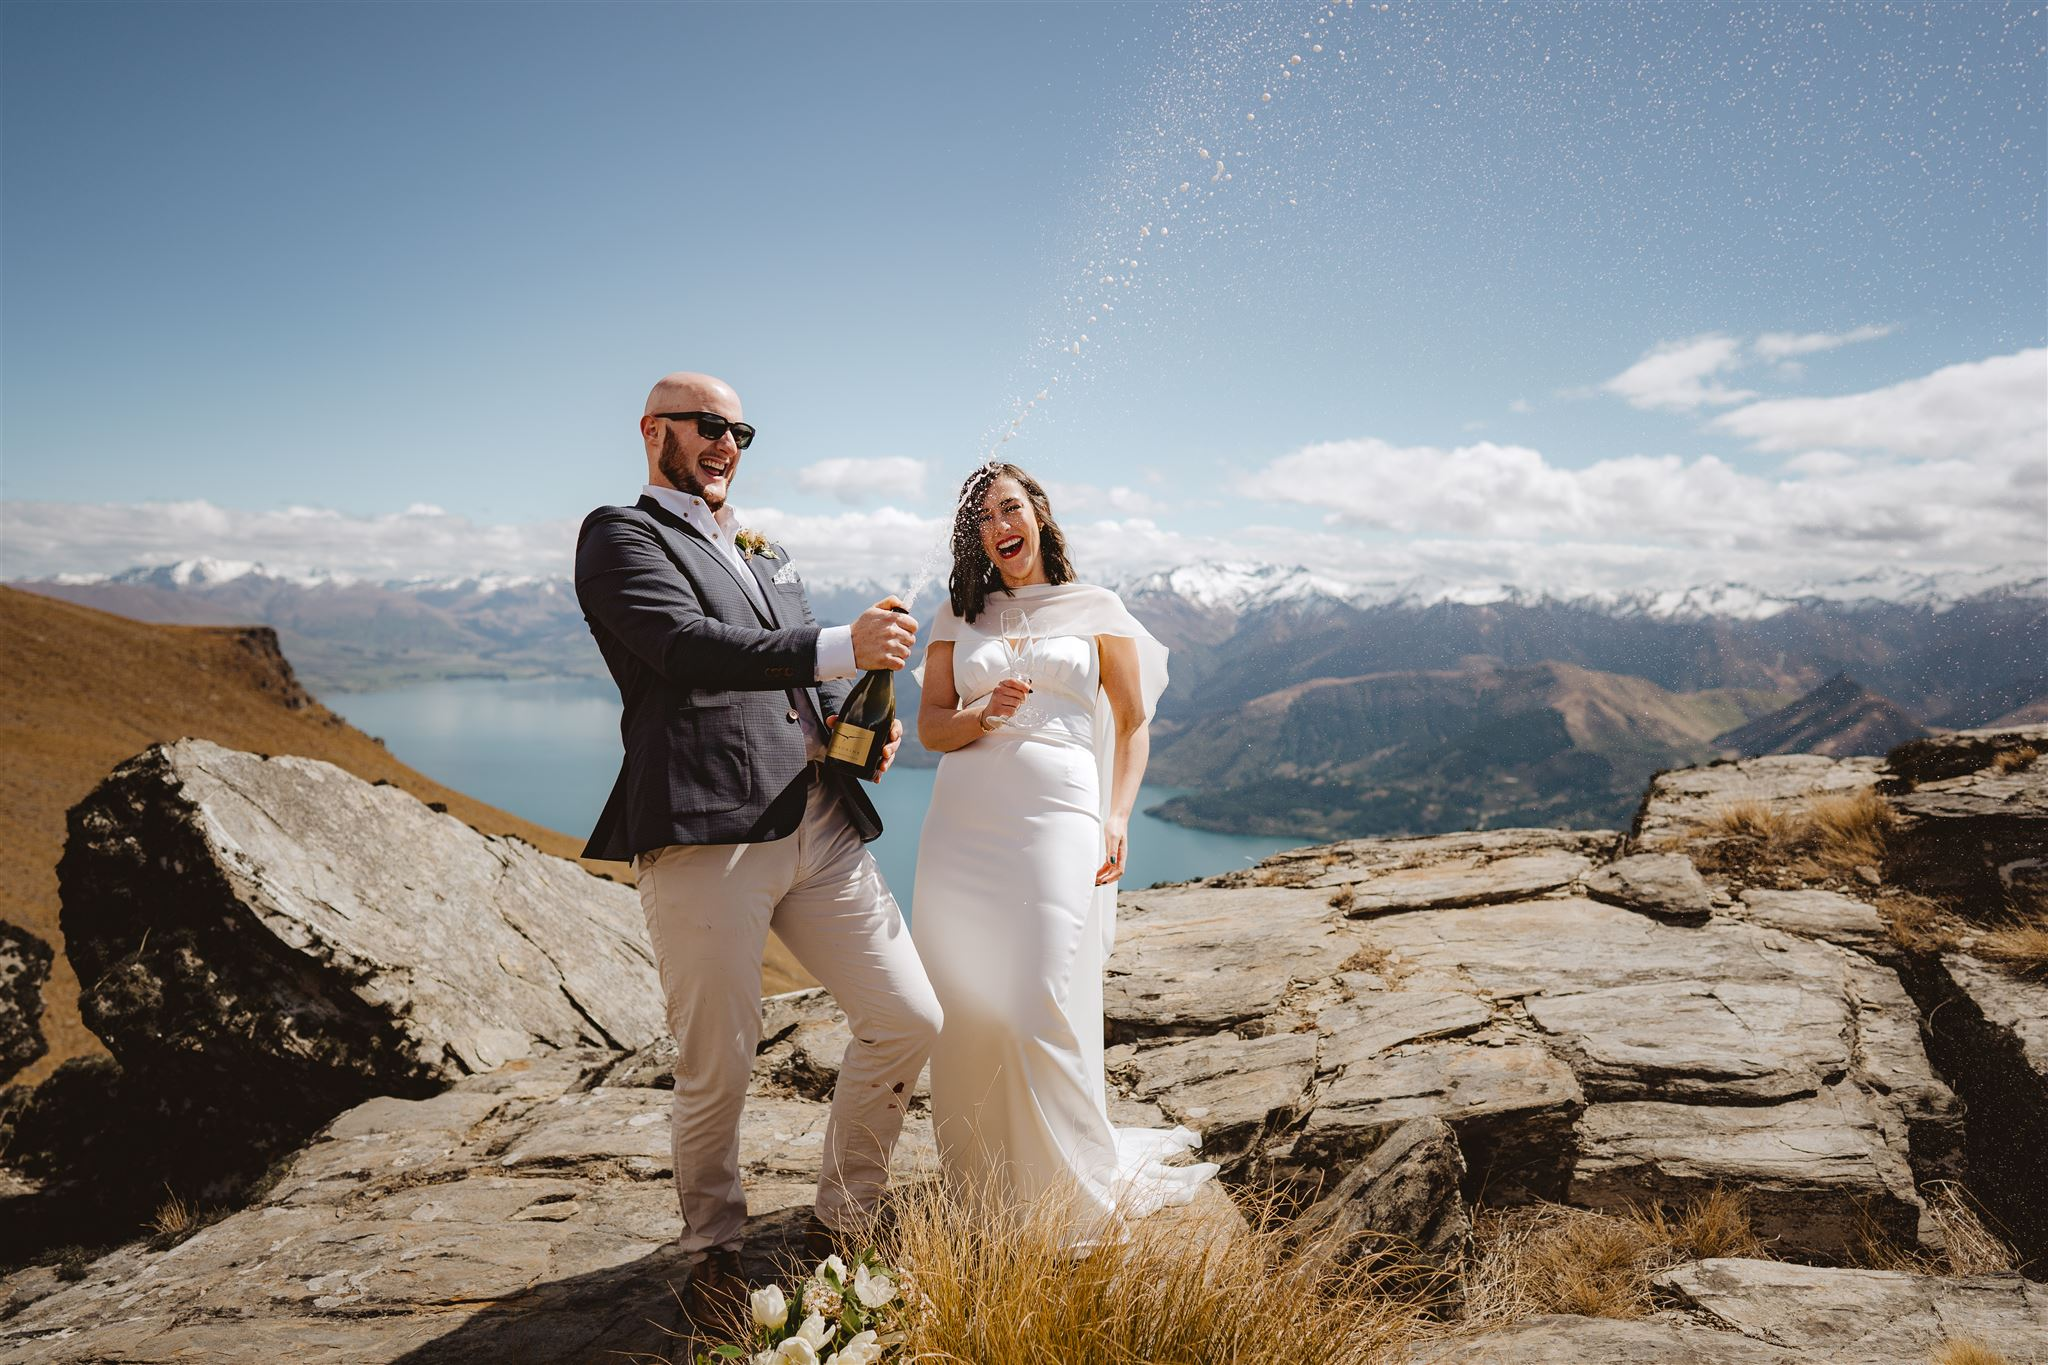 Bride and groom celebrating their wedding by spraying champagne on mountain top in Queenstown